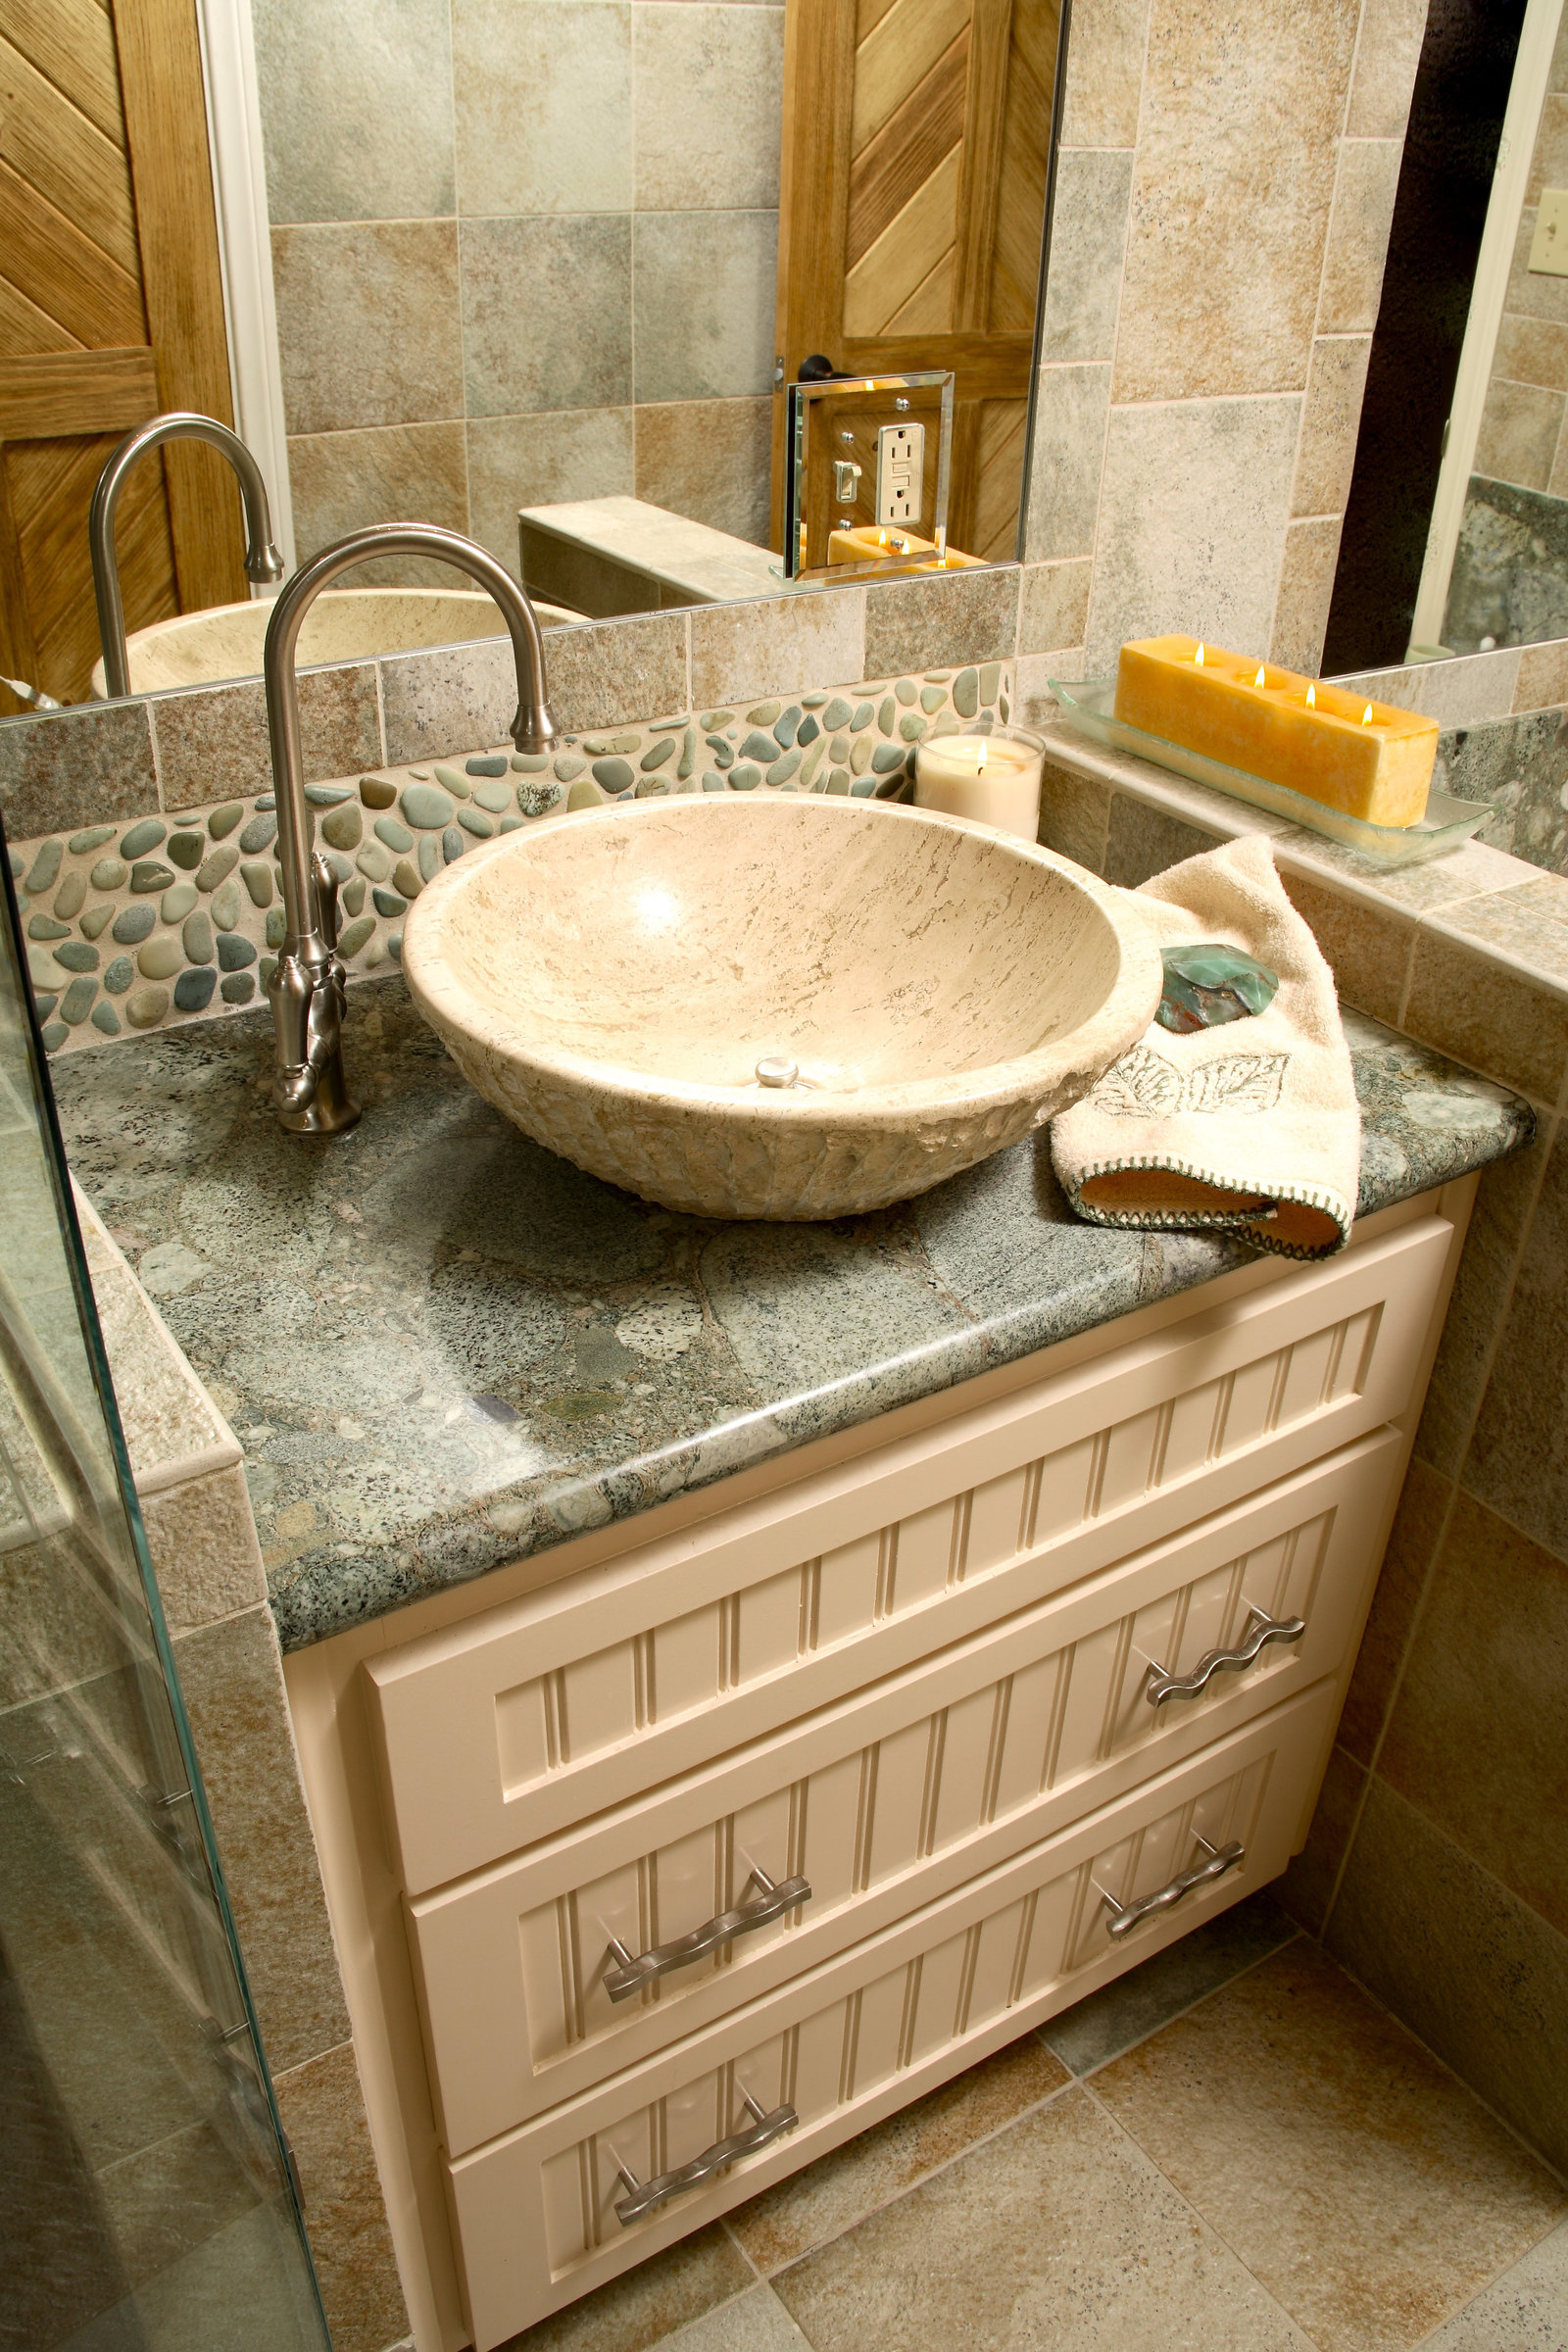 Arrowhead Vacation Home Powder Bath